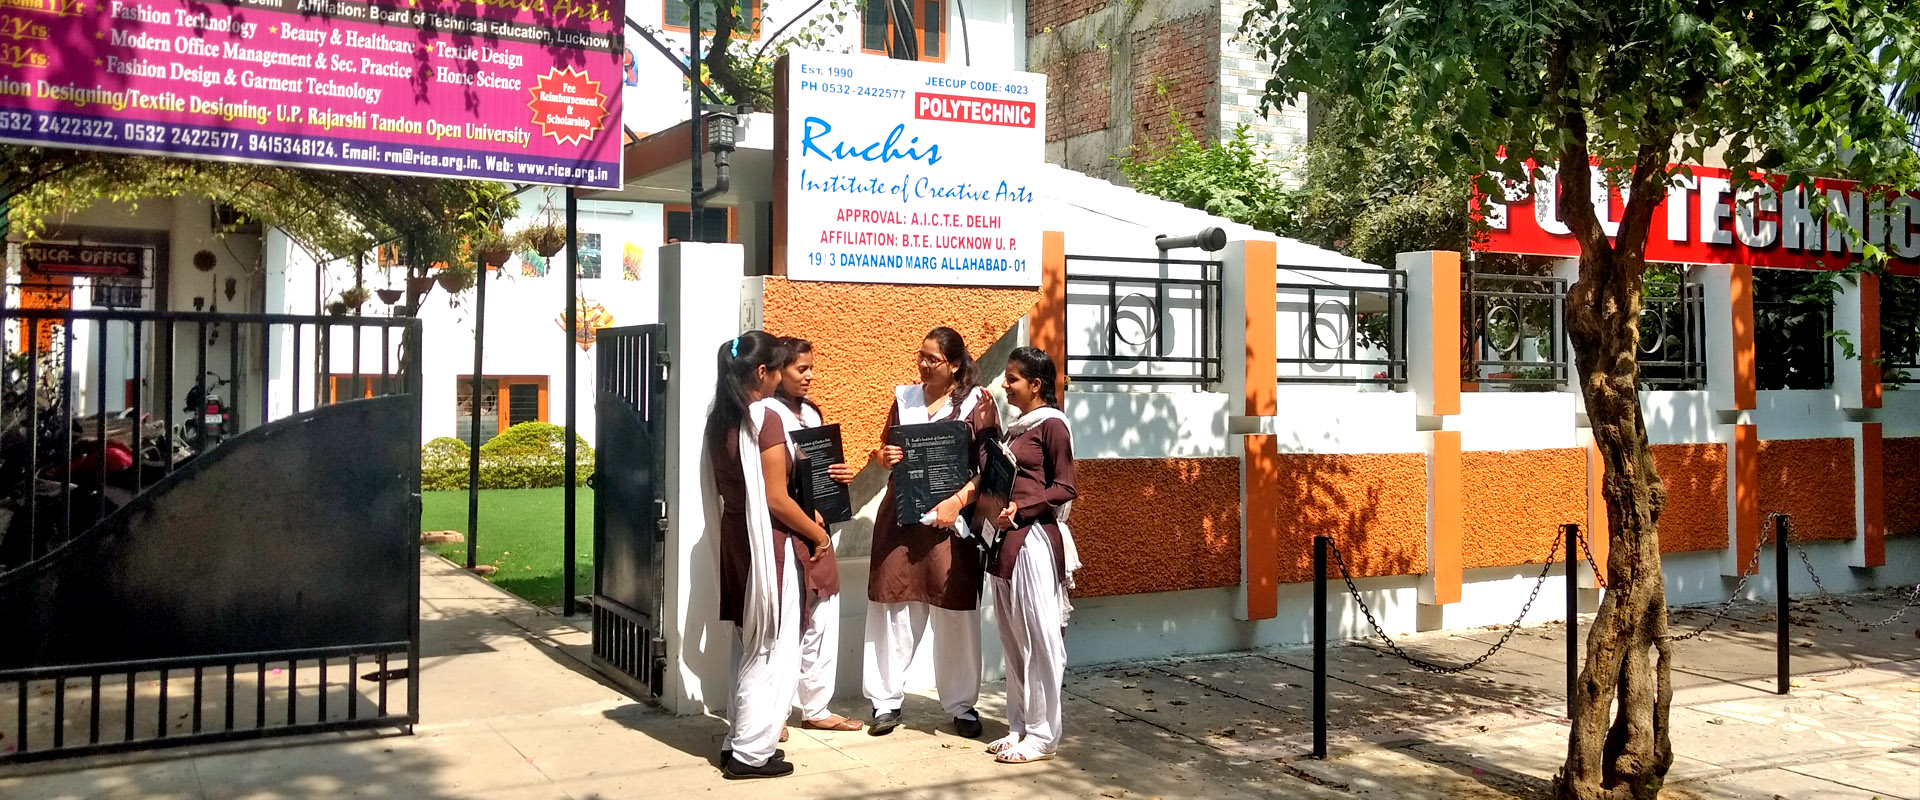 Ruchi S Institute Of Creative Arts An Academy Of Design